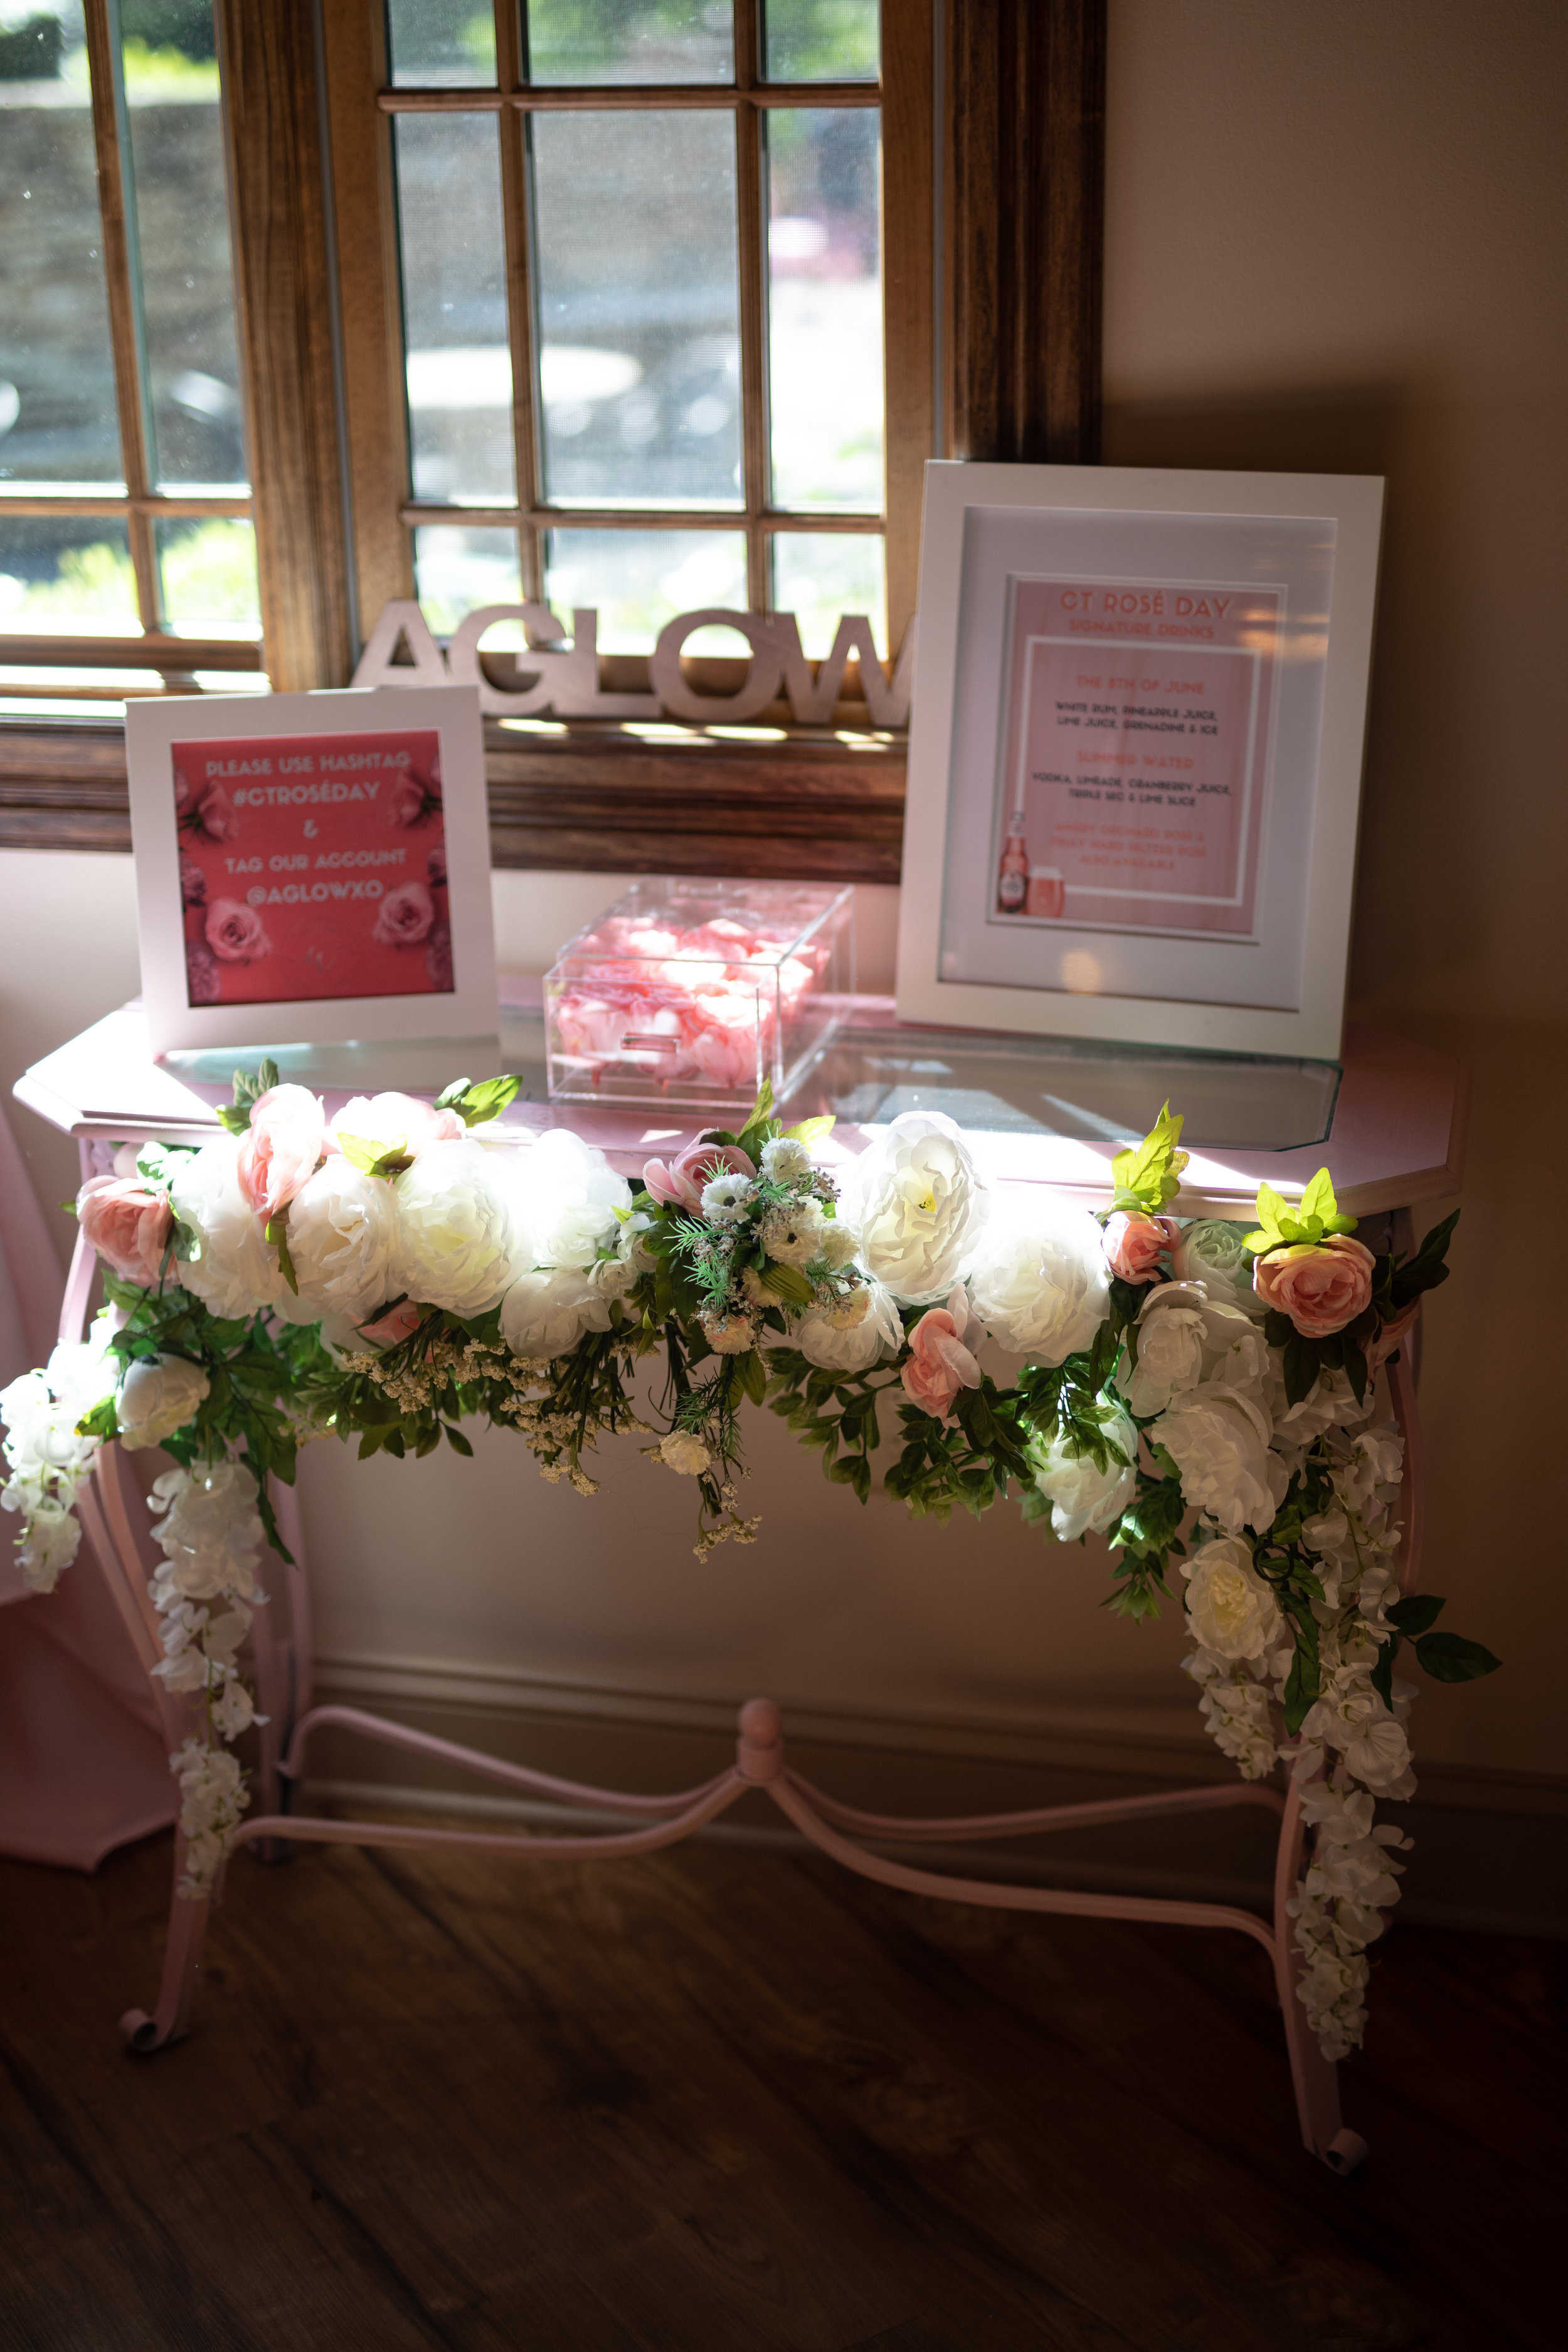 CT Rose Day 2019 - Norm_10.JPG